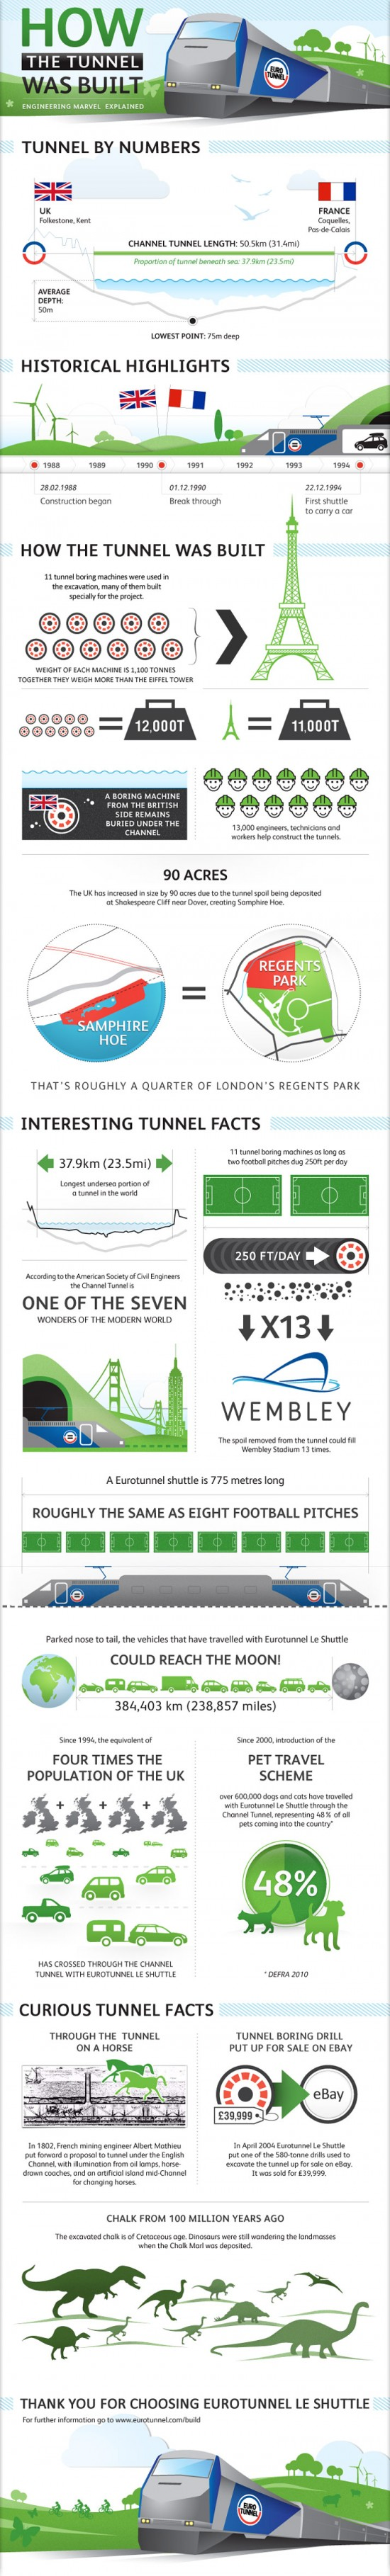 Infographic - How the channel tunnel was built